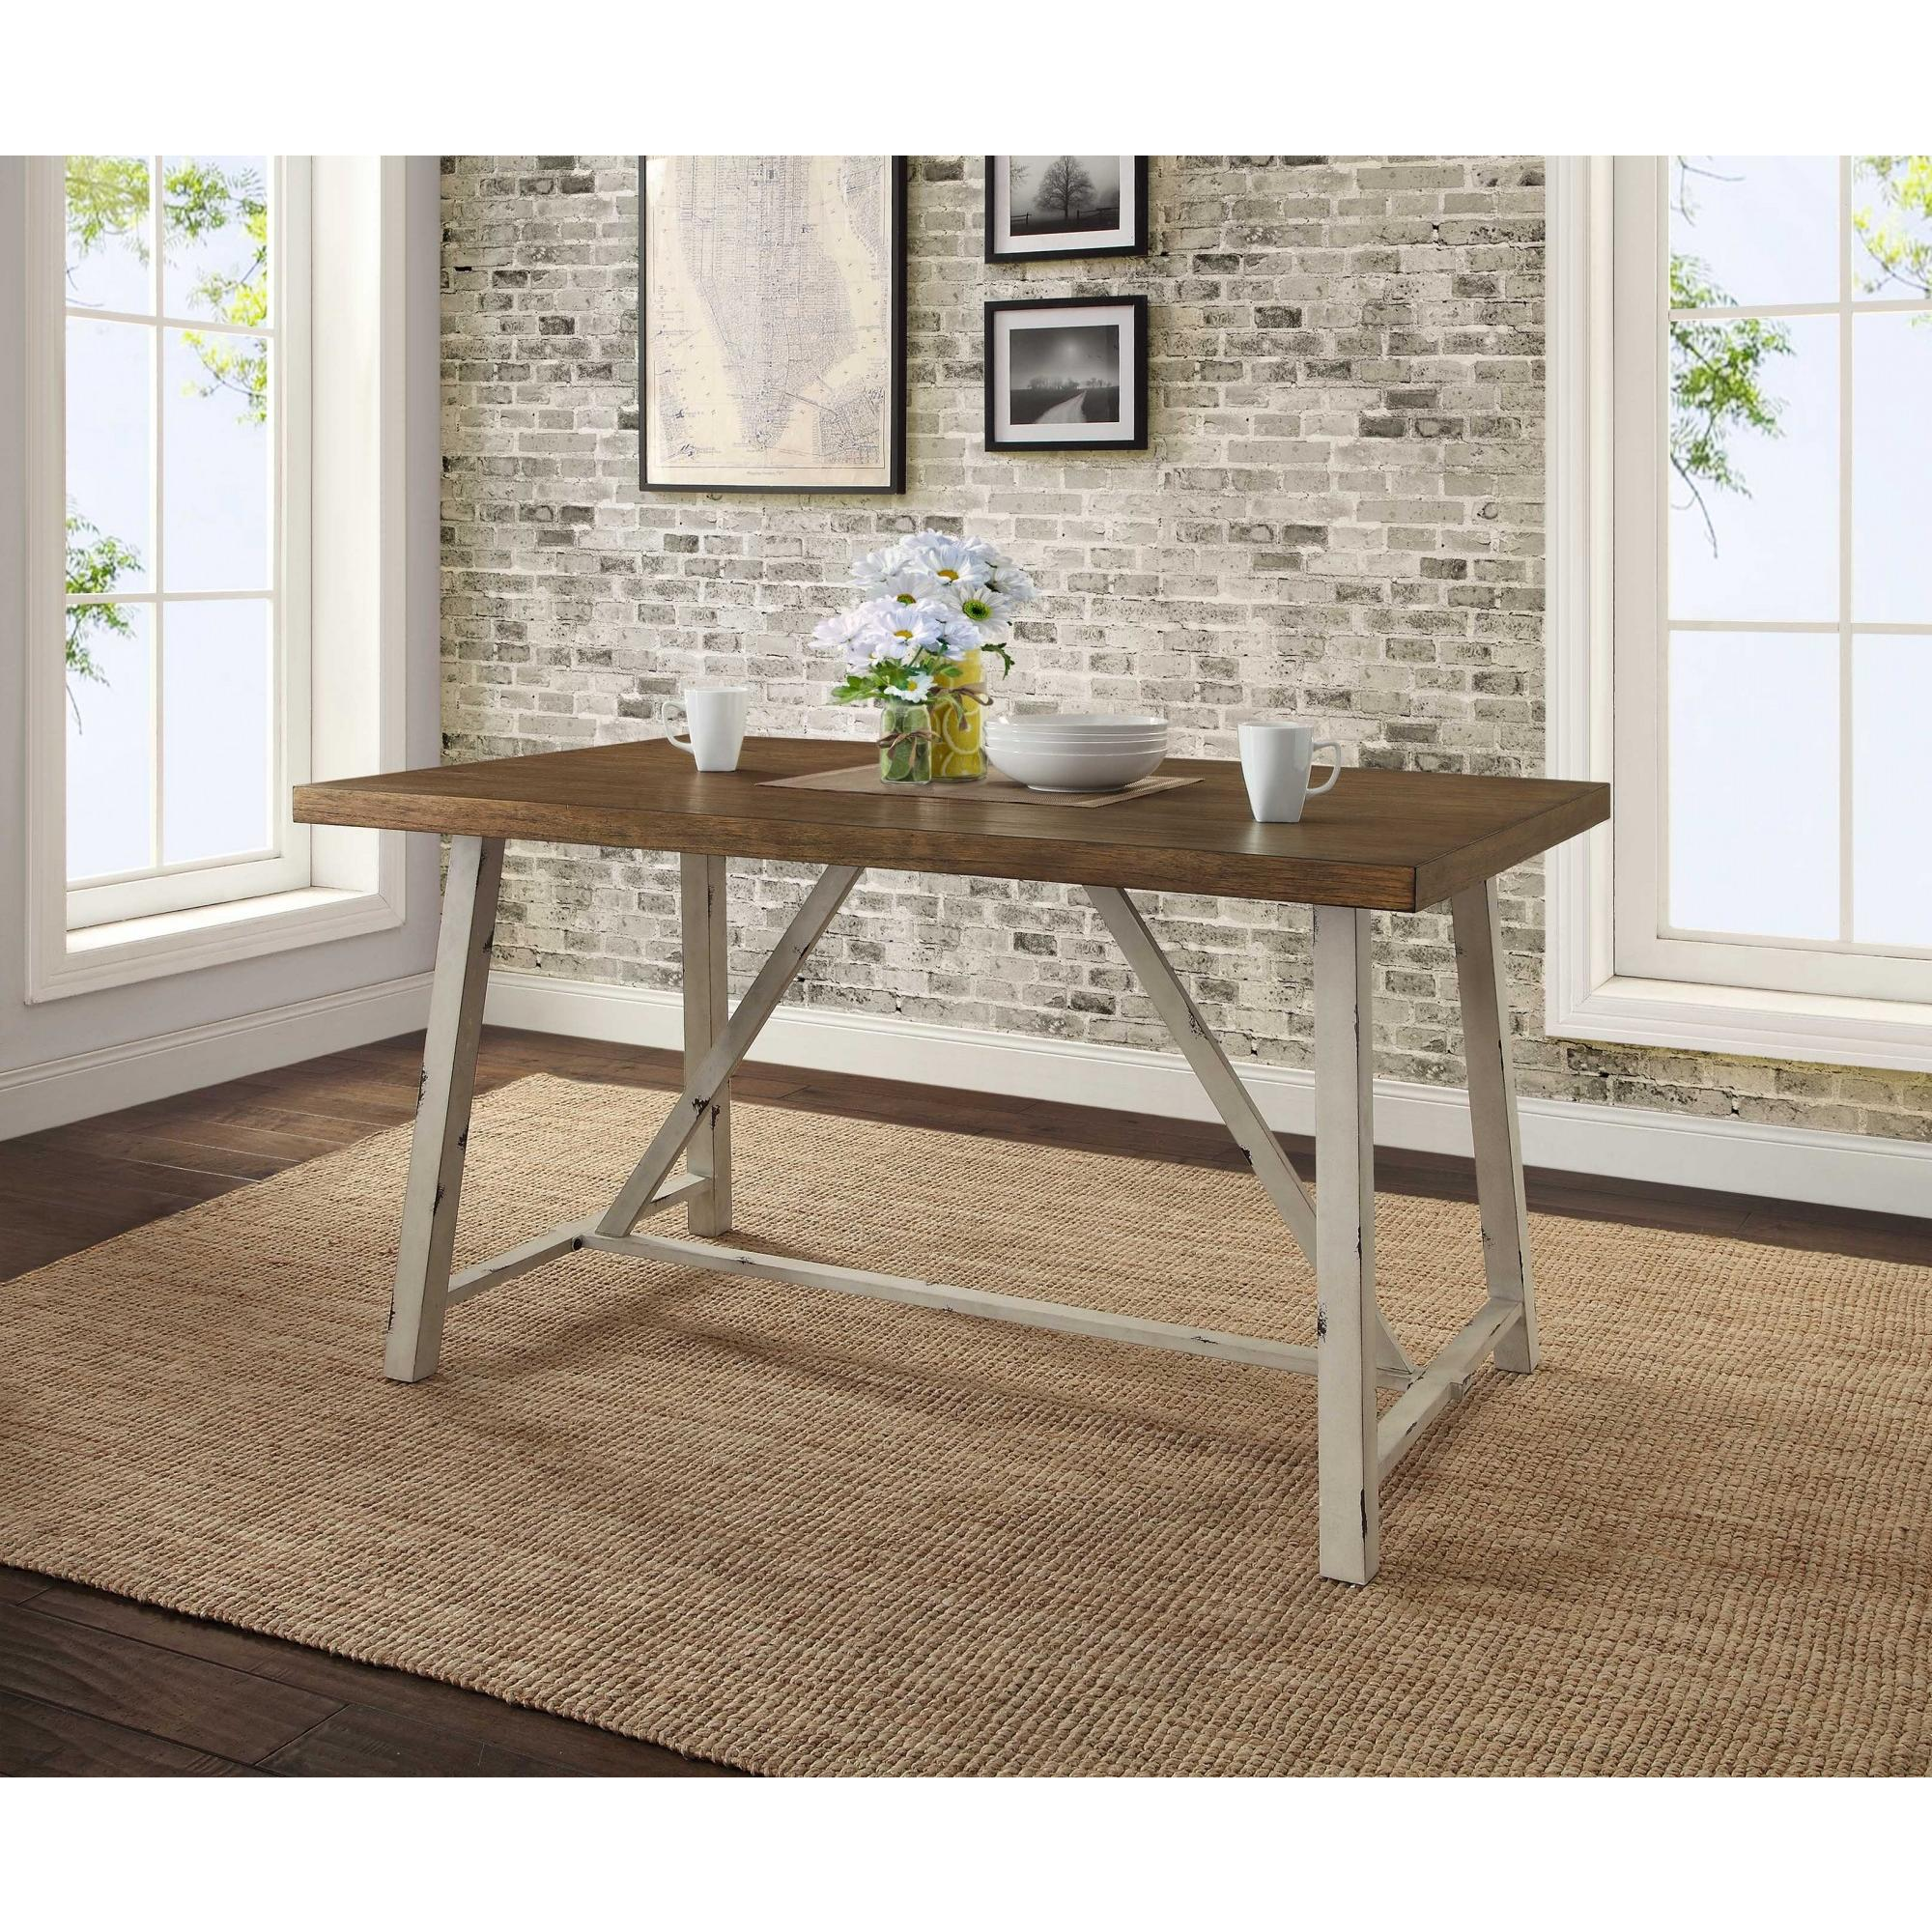 Better Homes and Gardens Collin Dining Table Wood top with